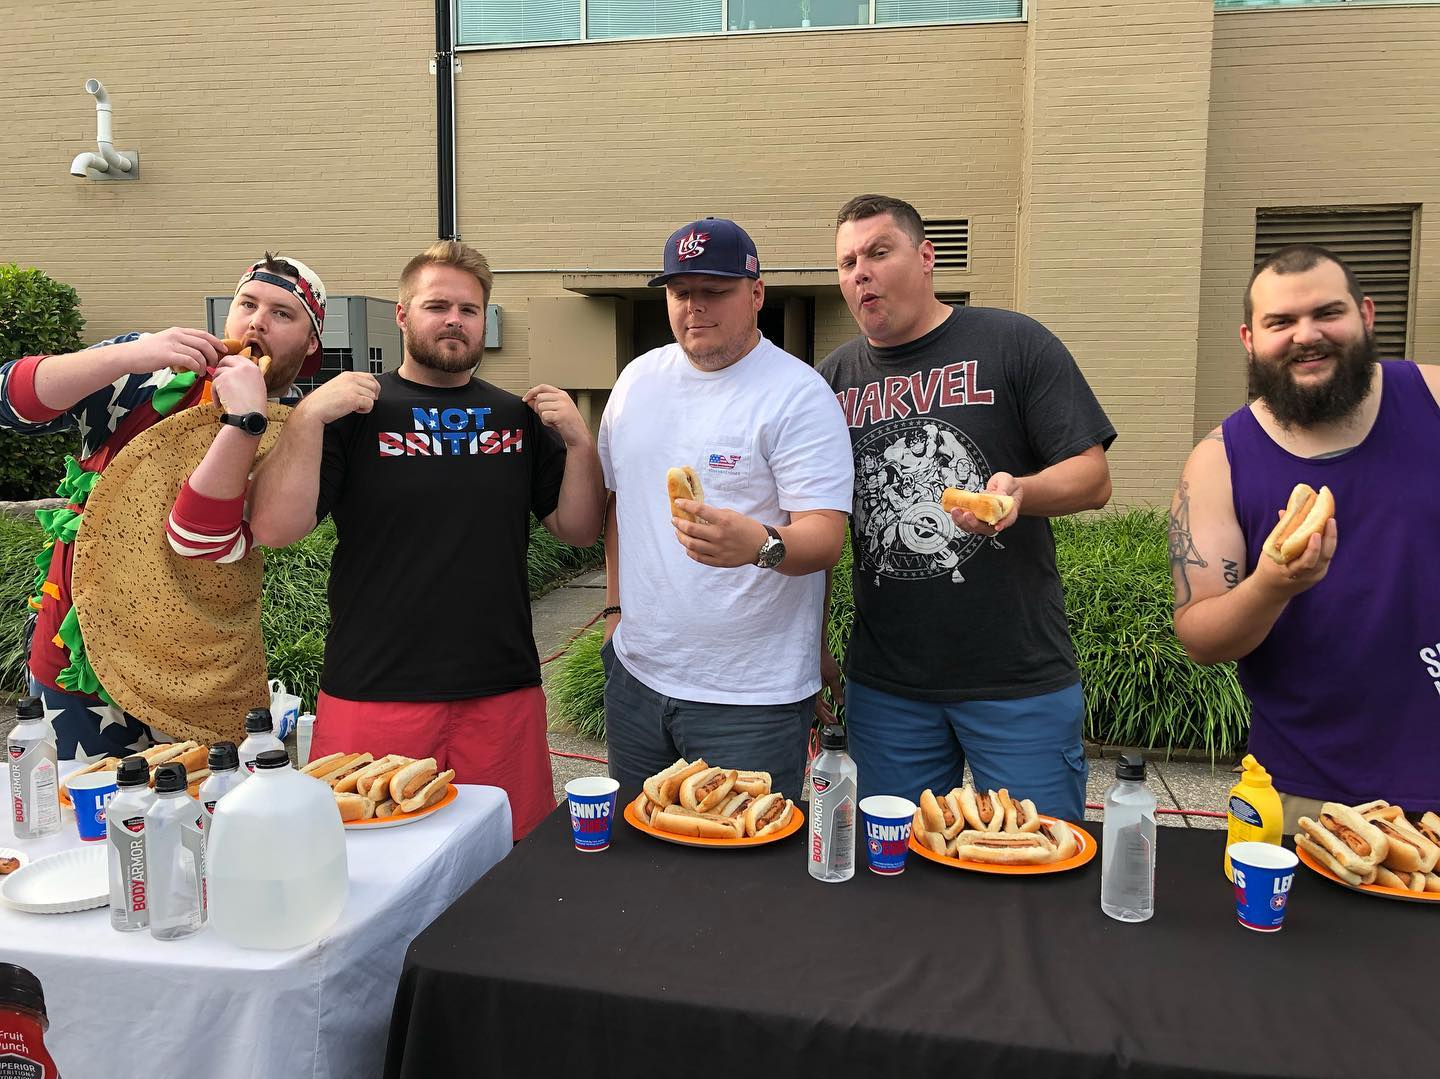 VIDEO: Will West Wins 3rd Annual Hotdog Eating Contest